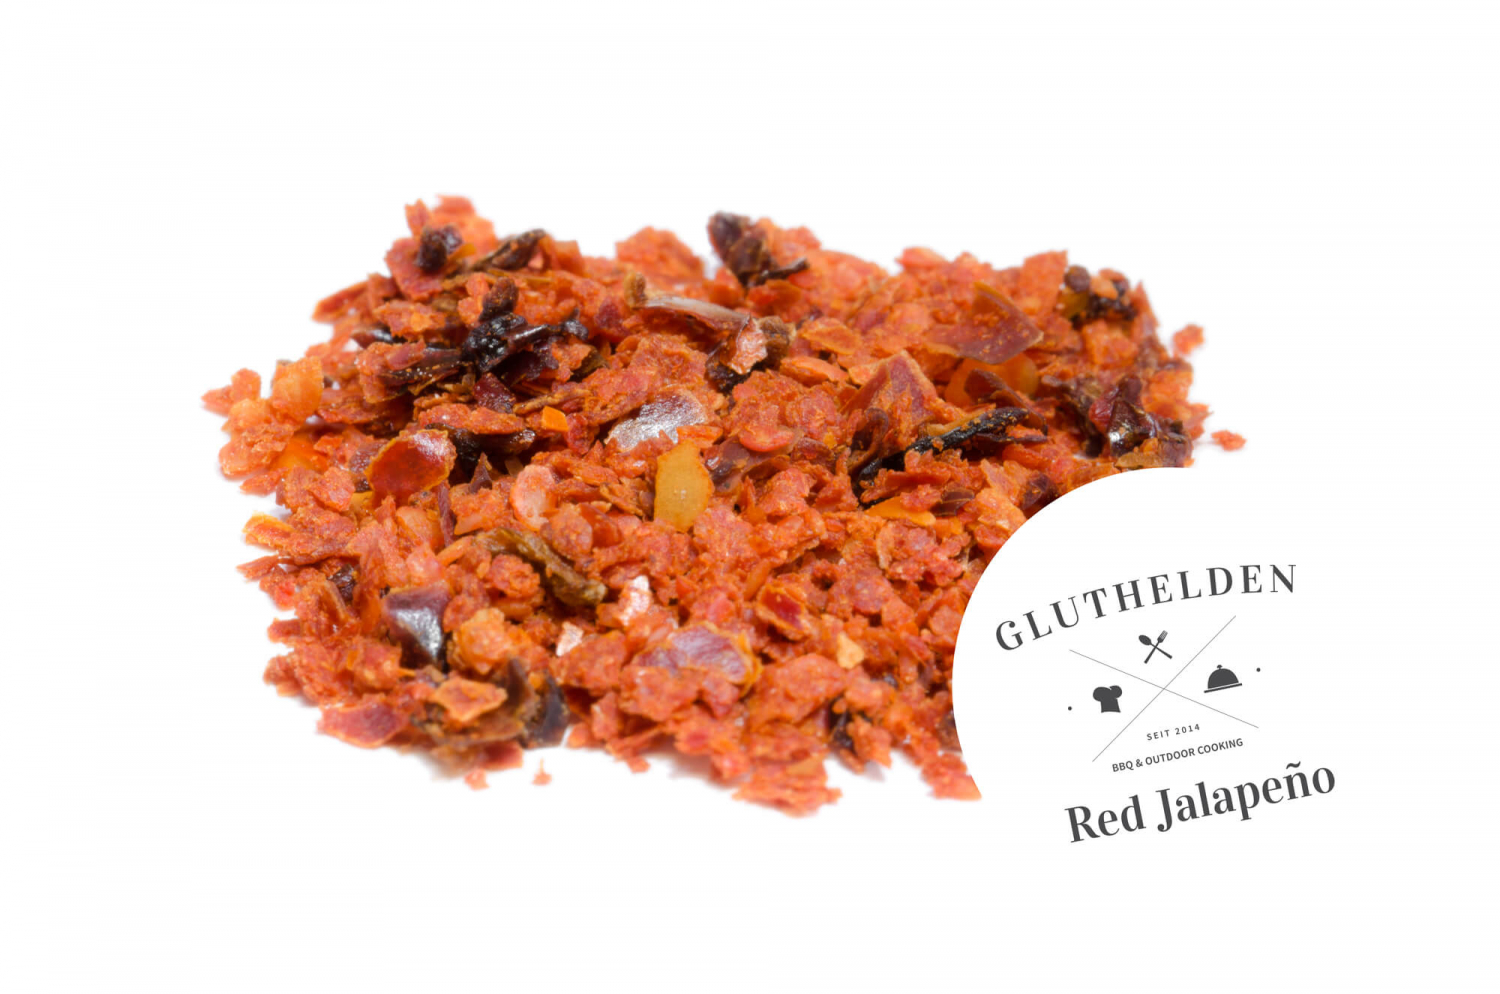 Gluthelden, Red Jalapeno - No Smoke - Extra Sweet